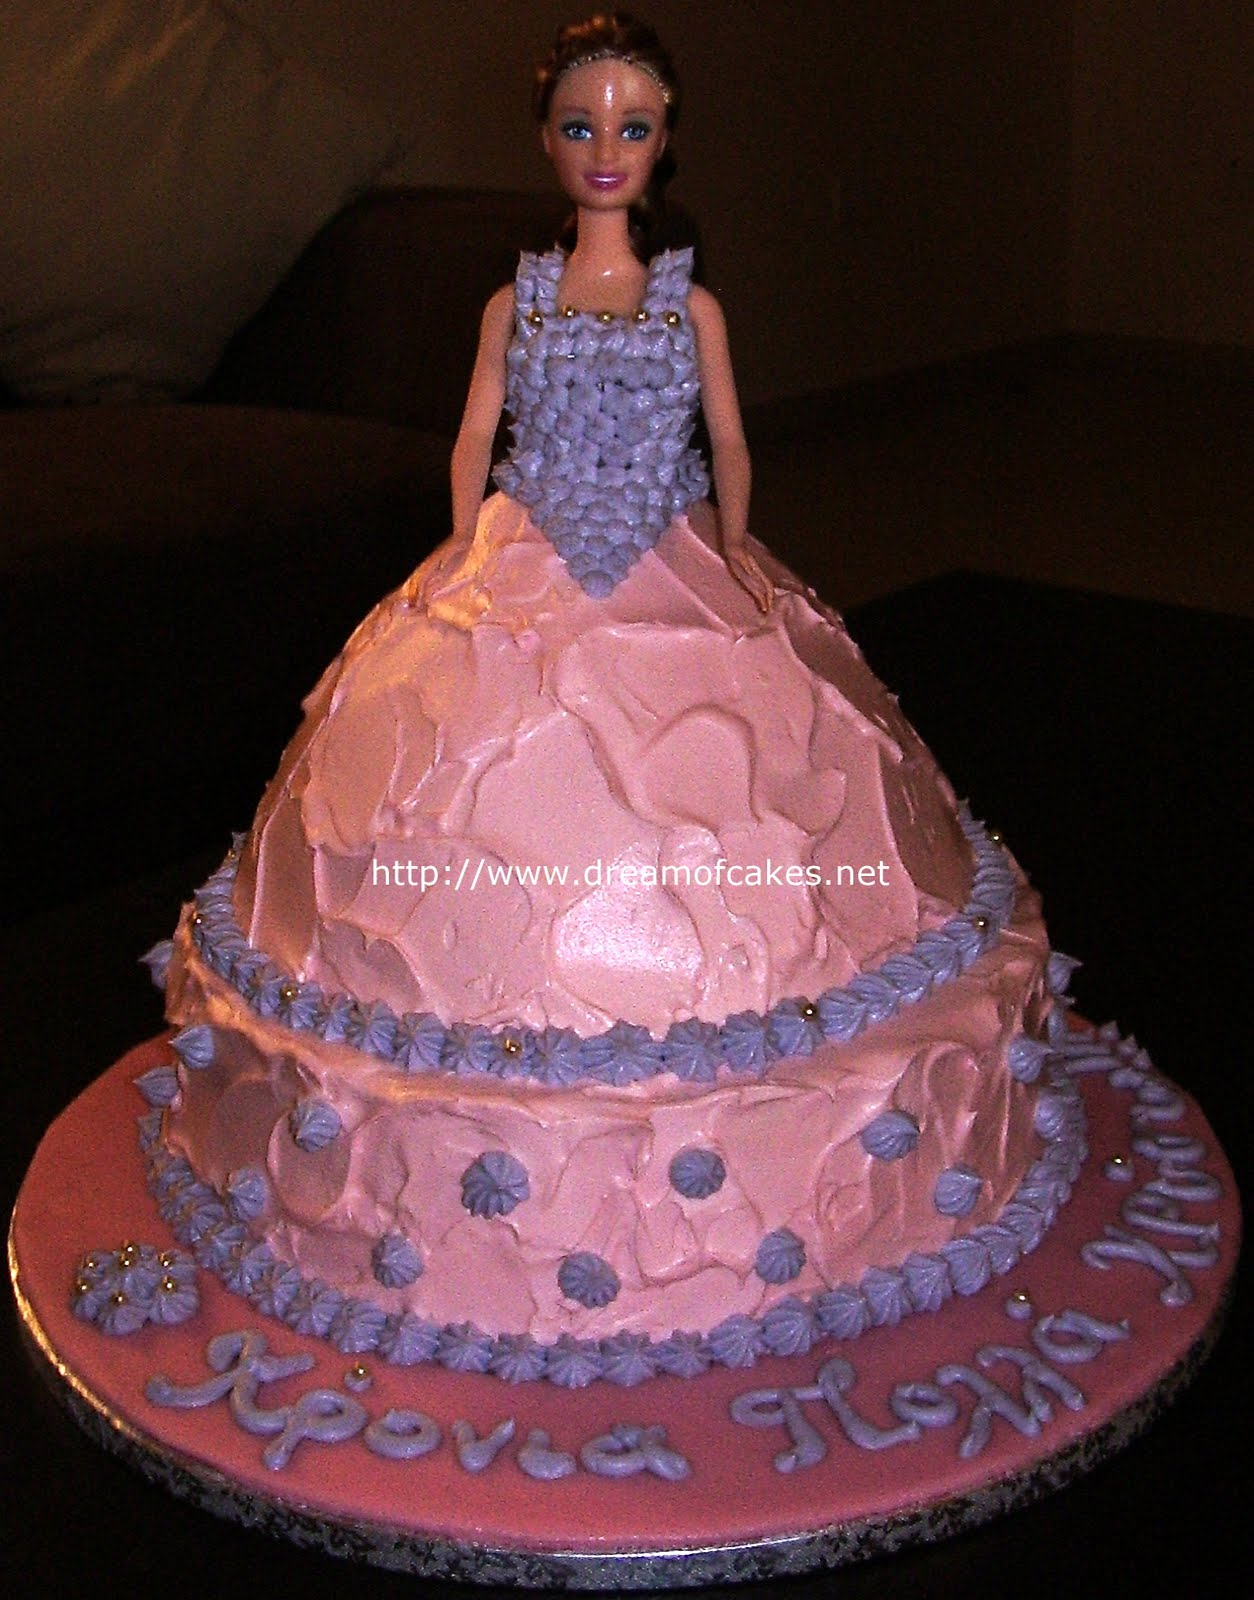 Birthday Cake Images Doll : Dream of Cakes: Doll Birthday Cake in Purple and Pink